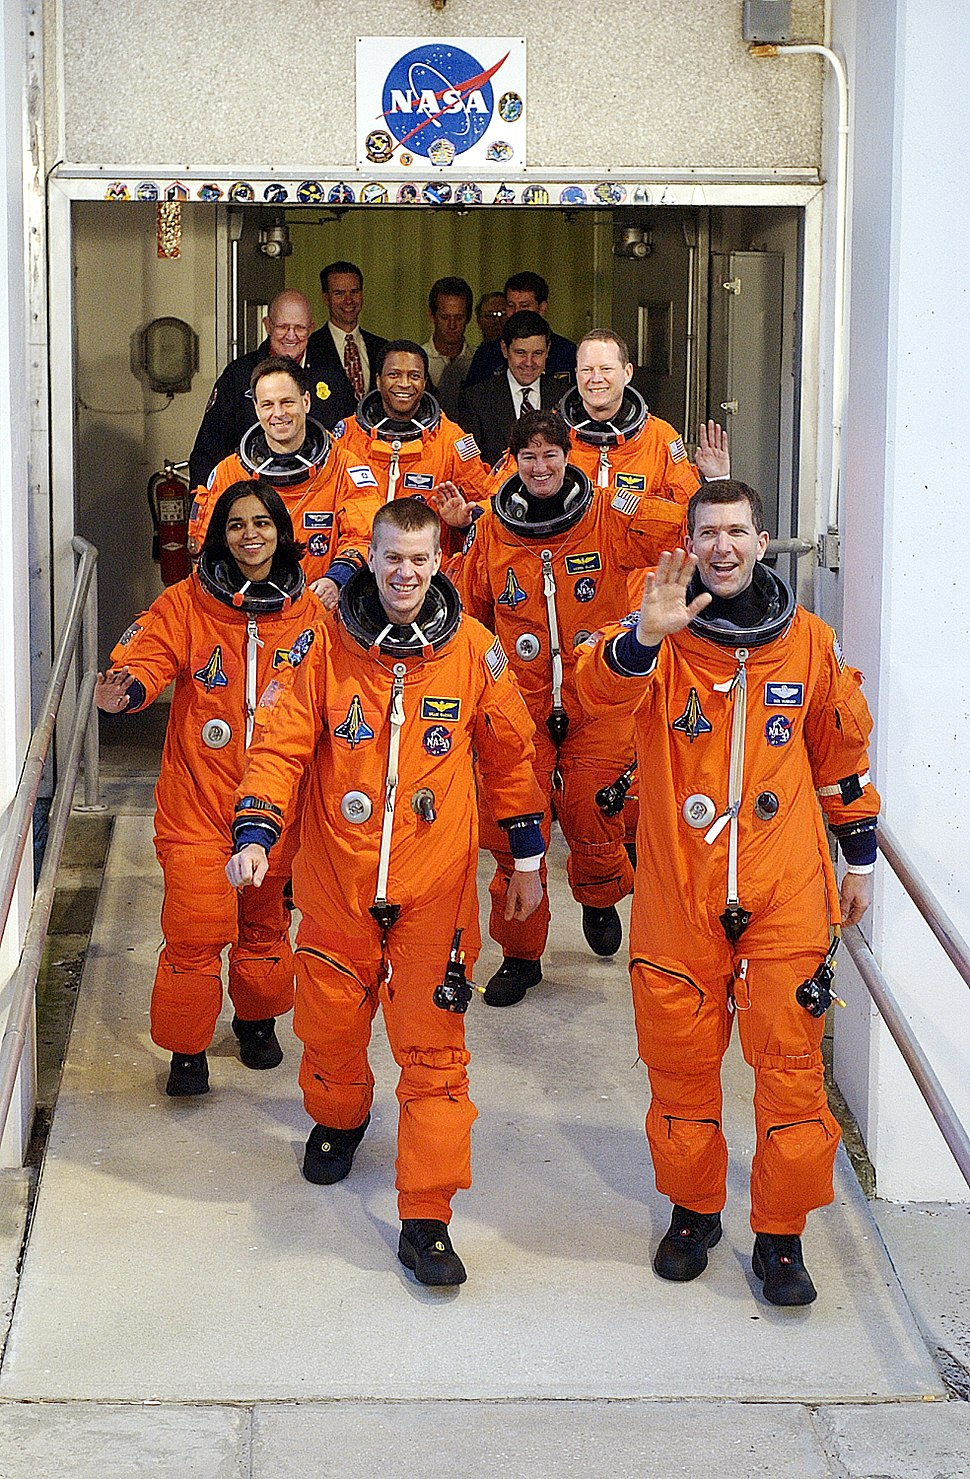 Sts107crewsmall